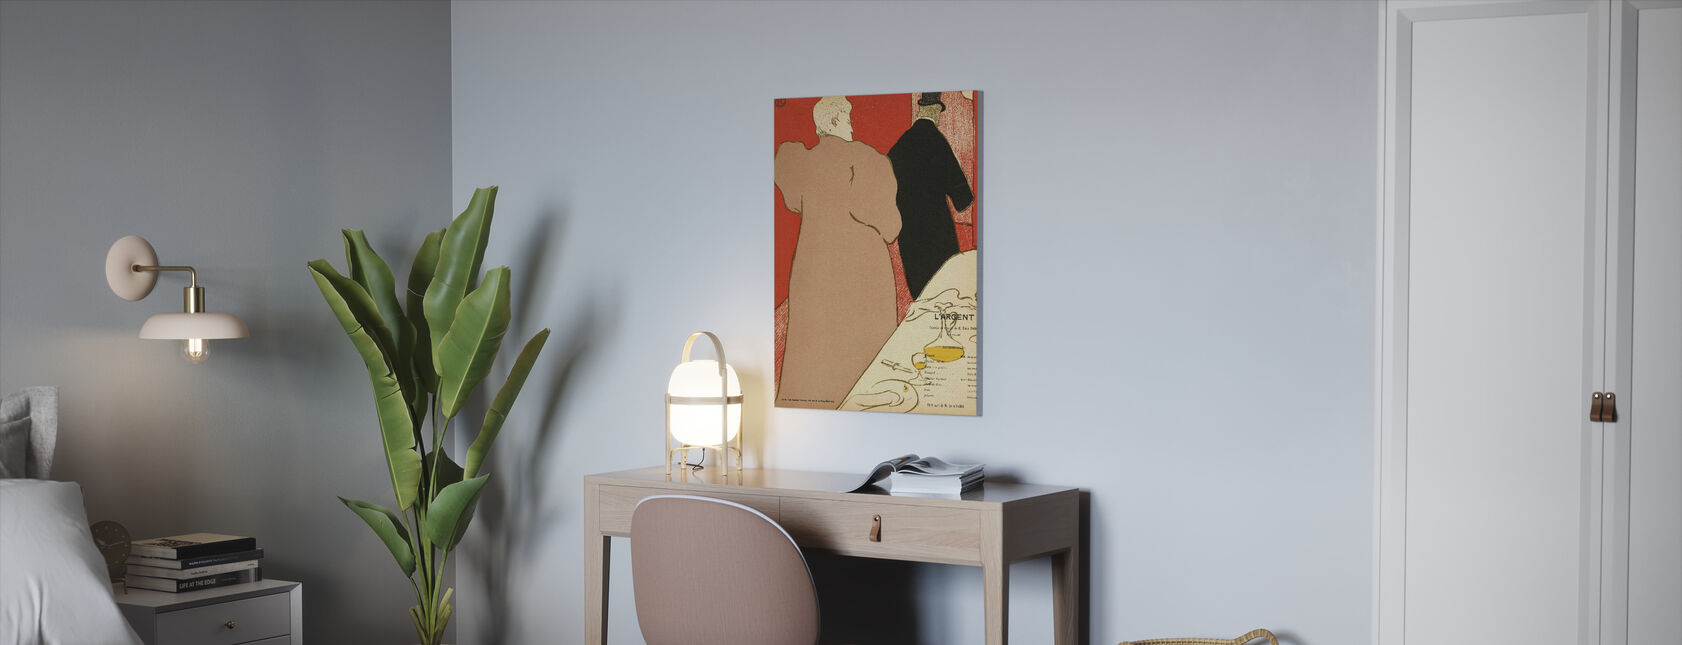 The Silver - Emile Fabre - Canvas print - Office